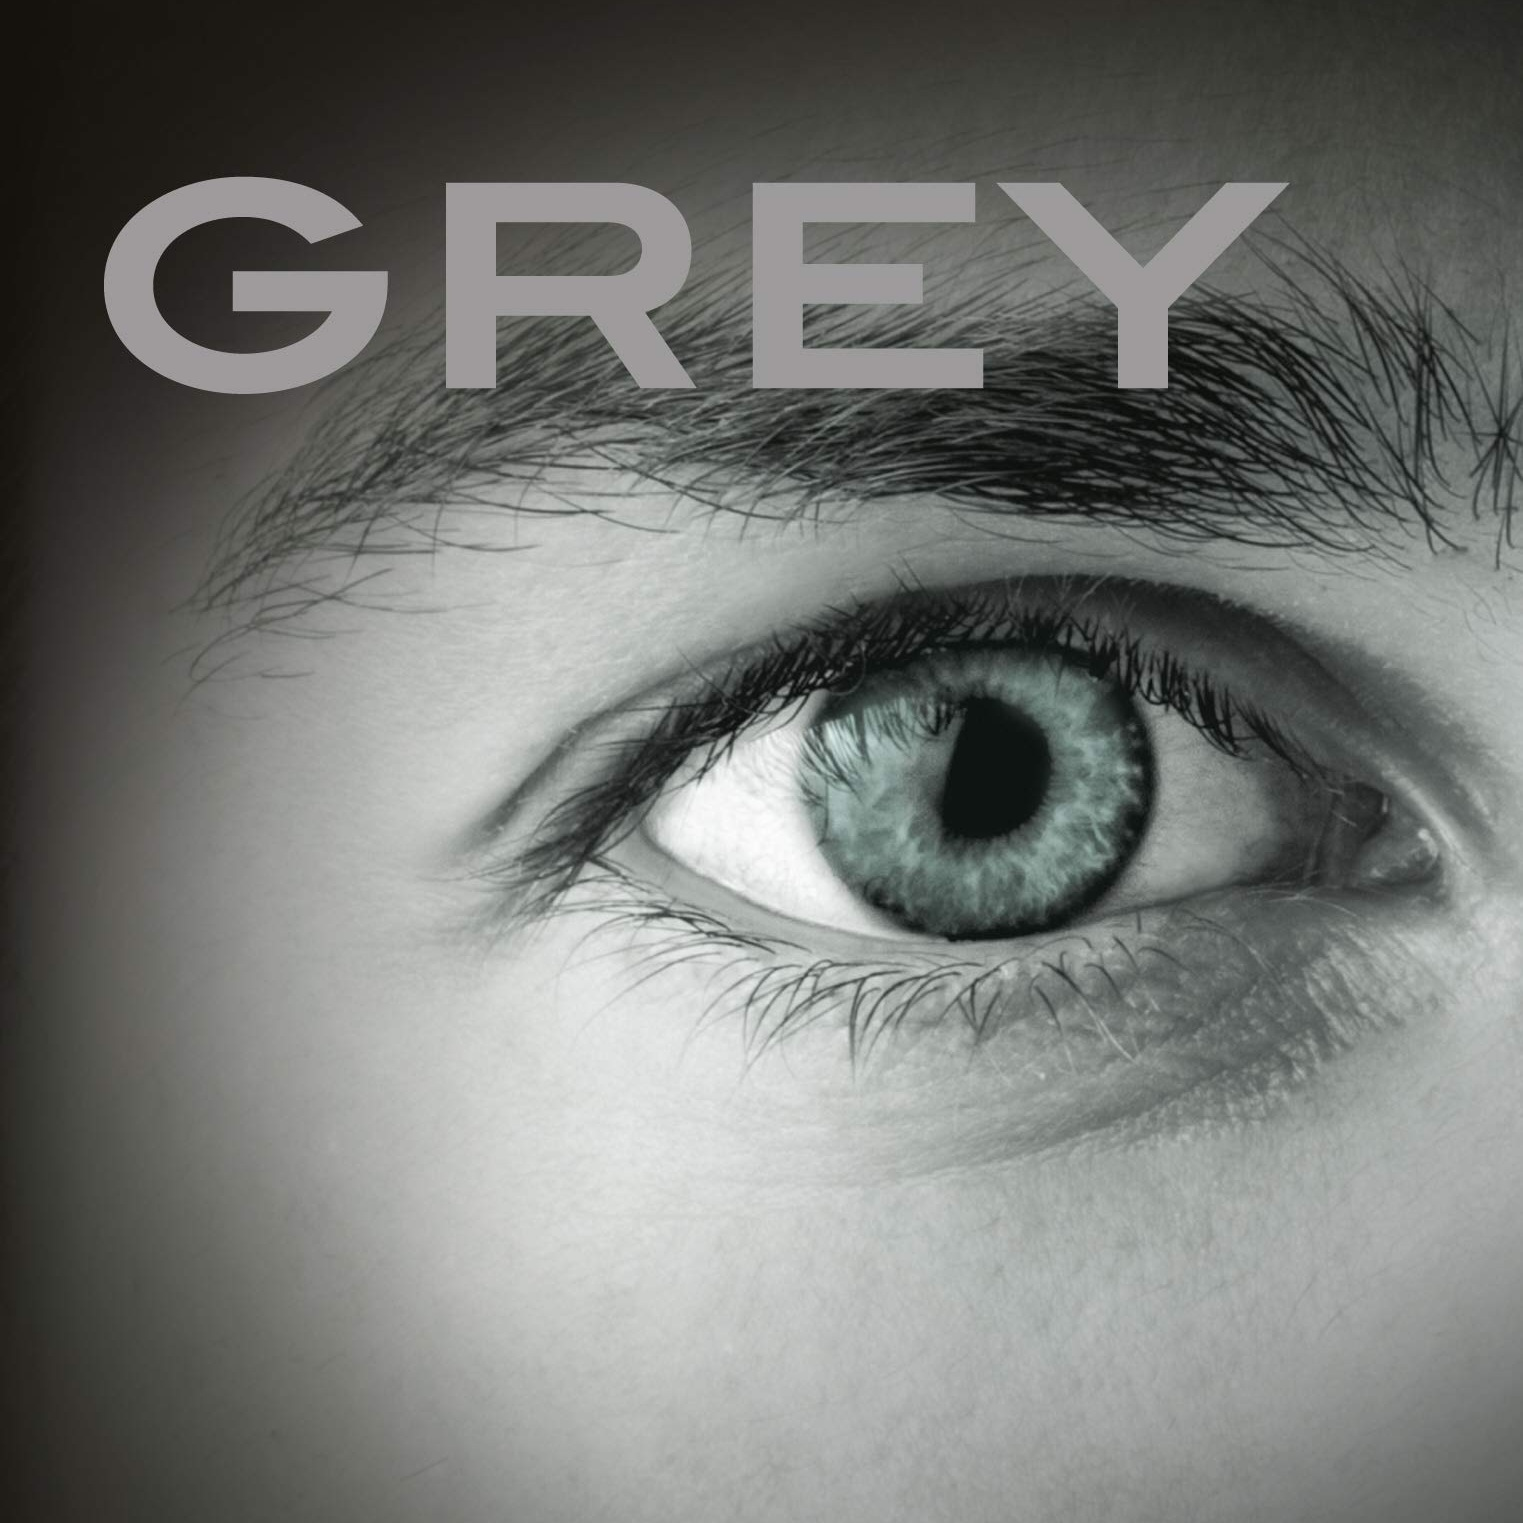 A CHAPTER BY CHAPTER REVIEW OF GREY BY EL JAMES (THE TELEGRAPH)